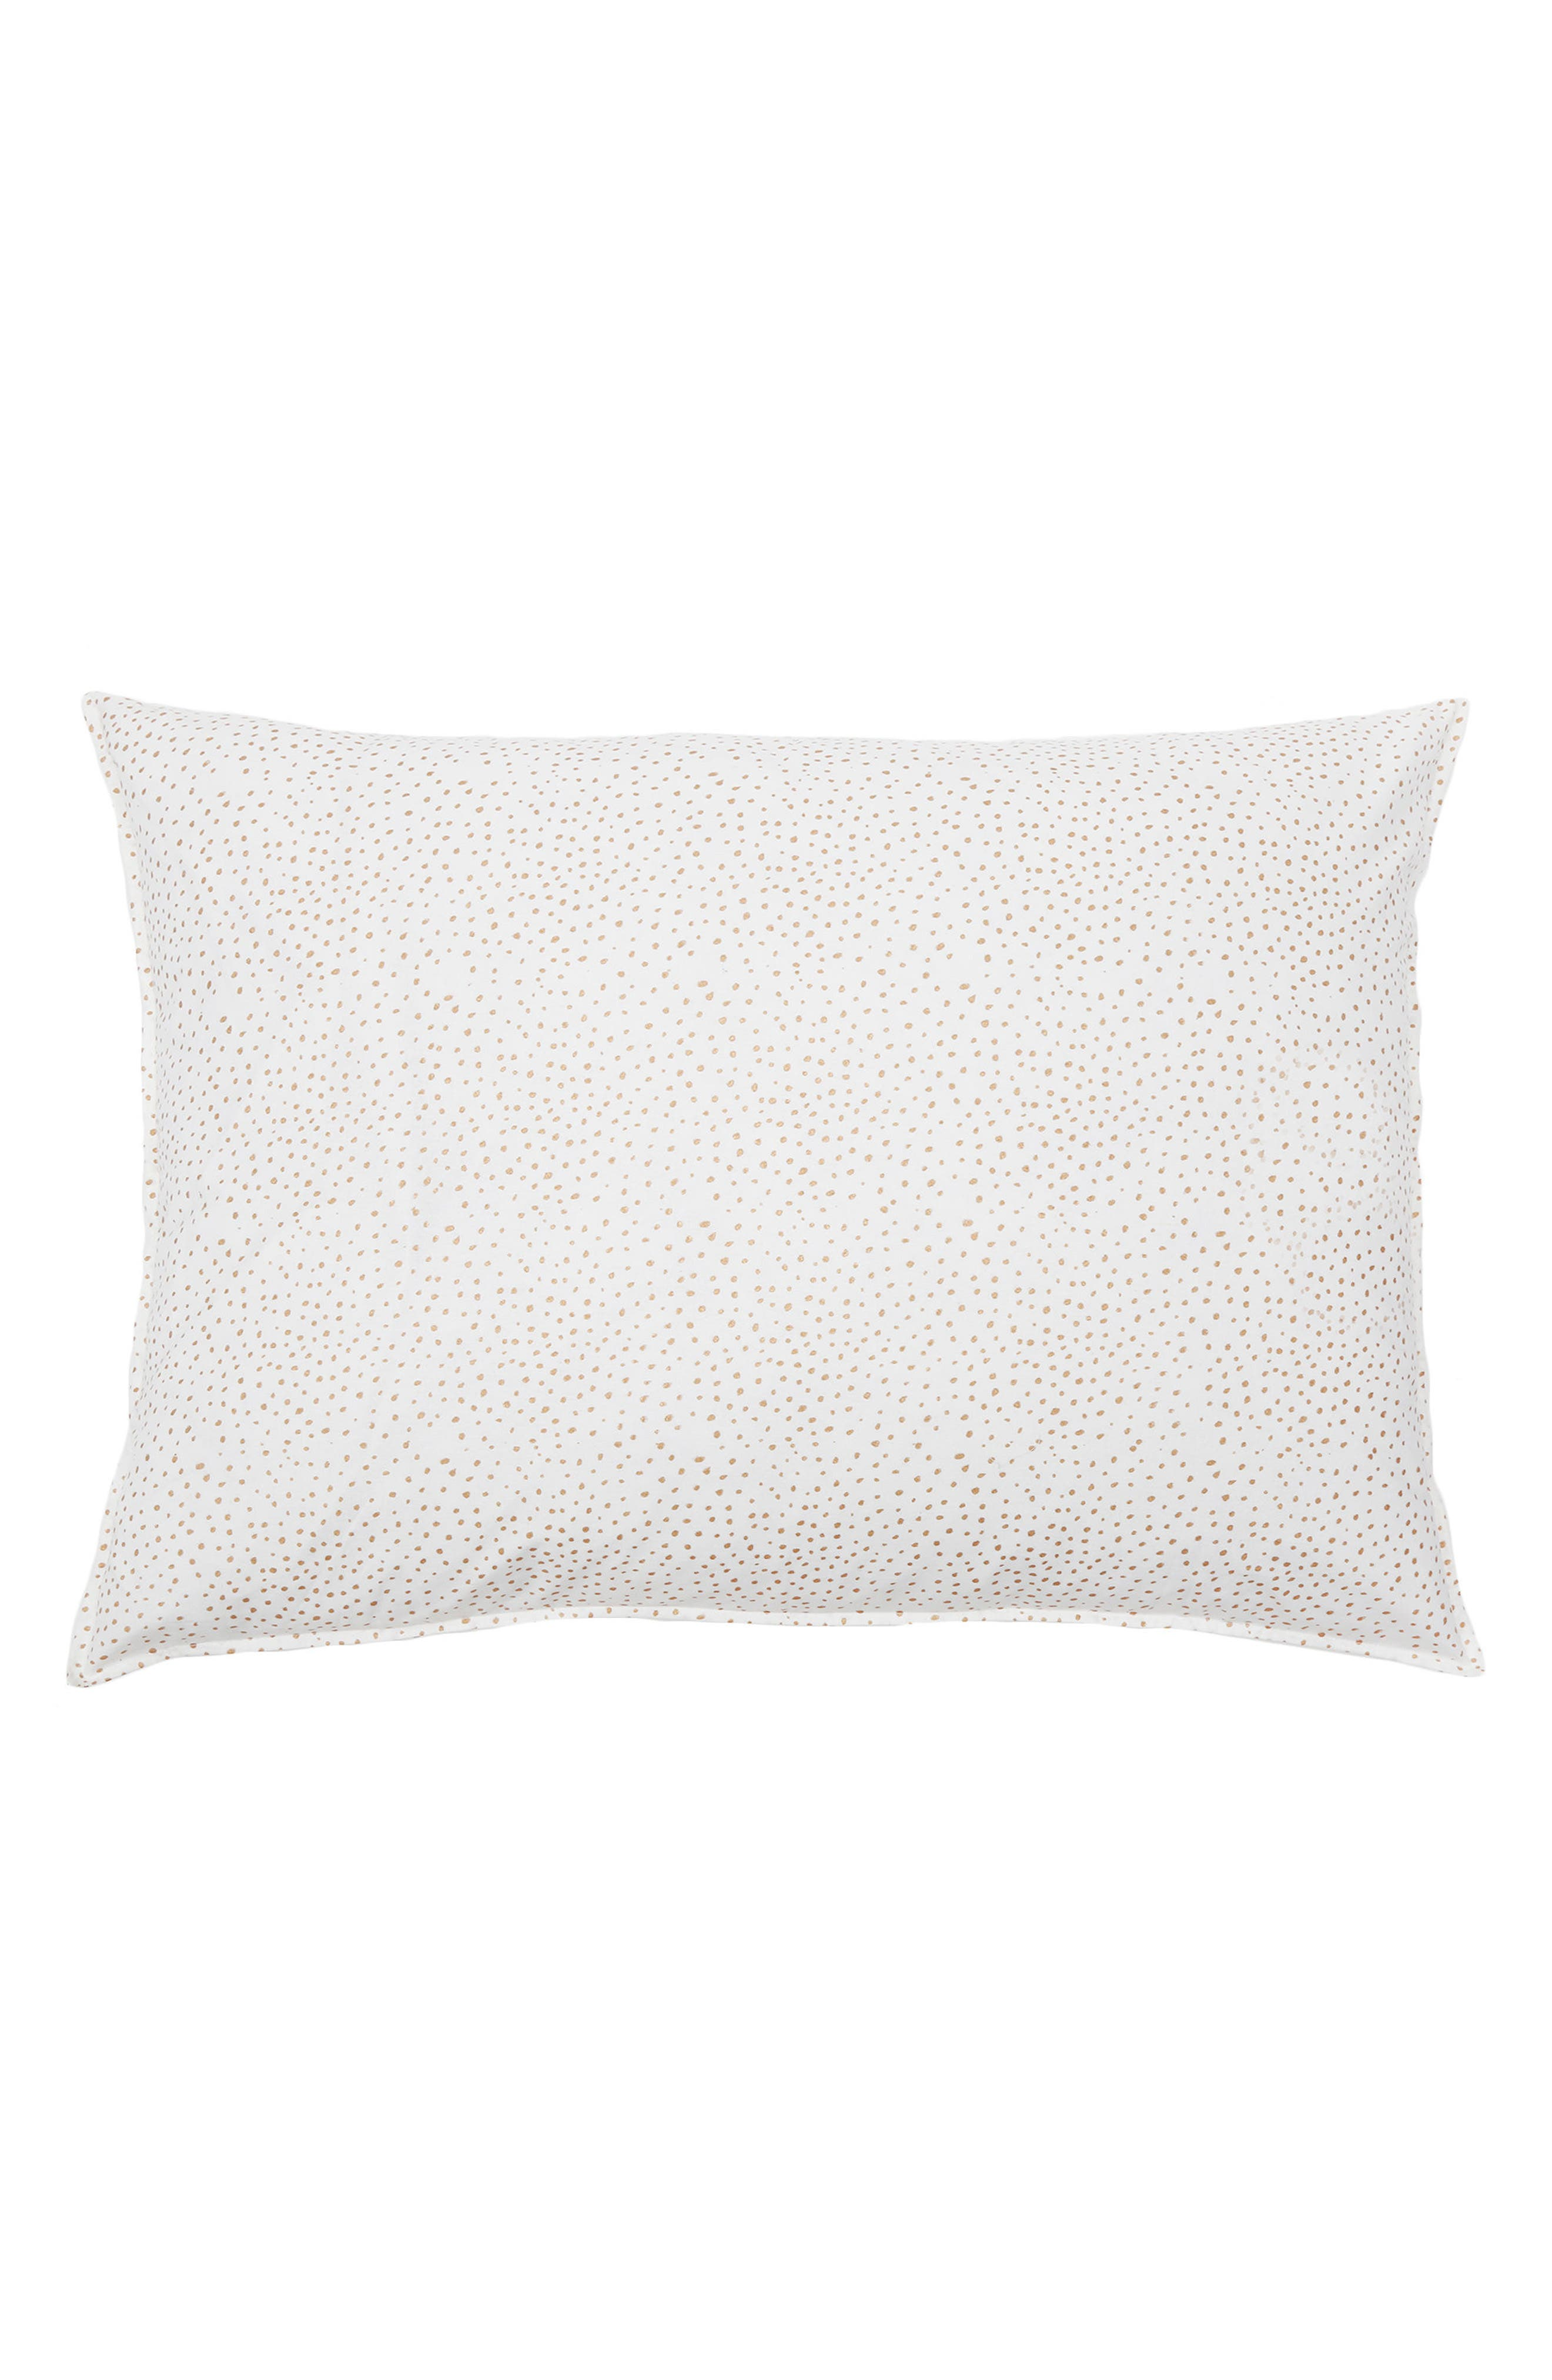 Main Image - Pom Pom at Home Dot Big Accent Pillow